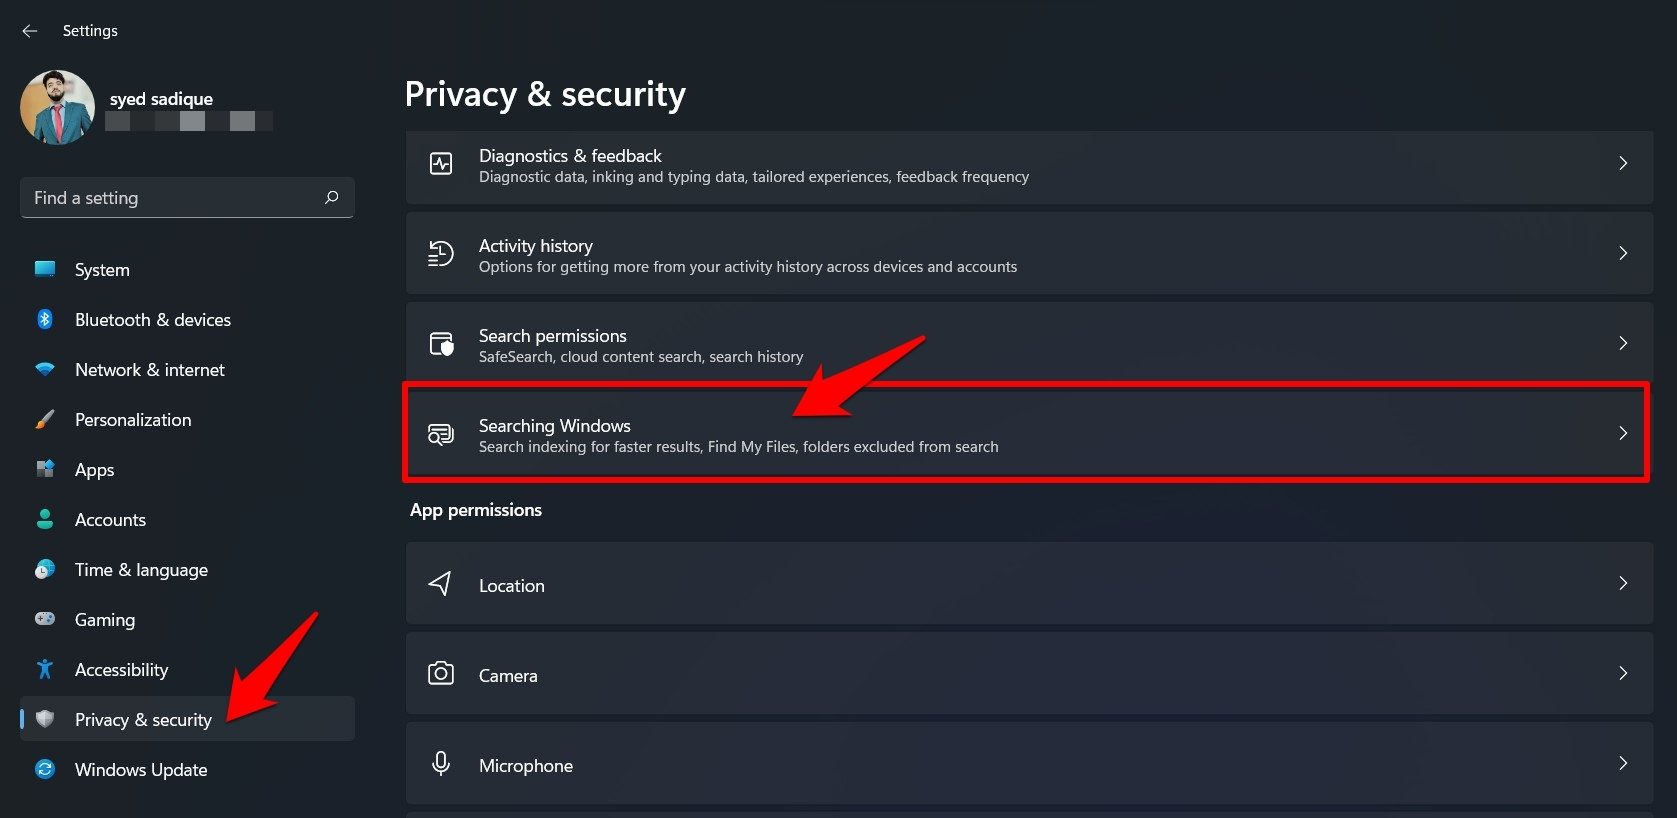 searching windows option in privacy and security